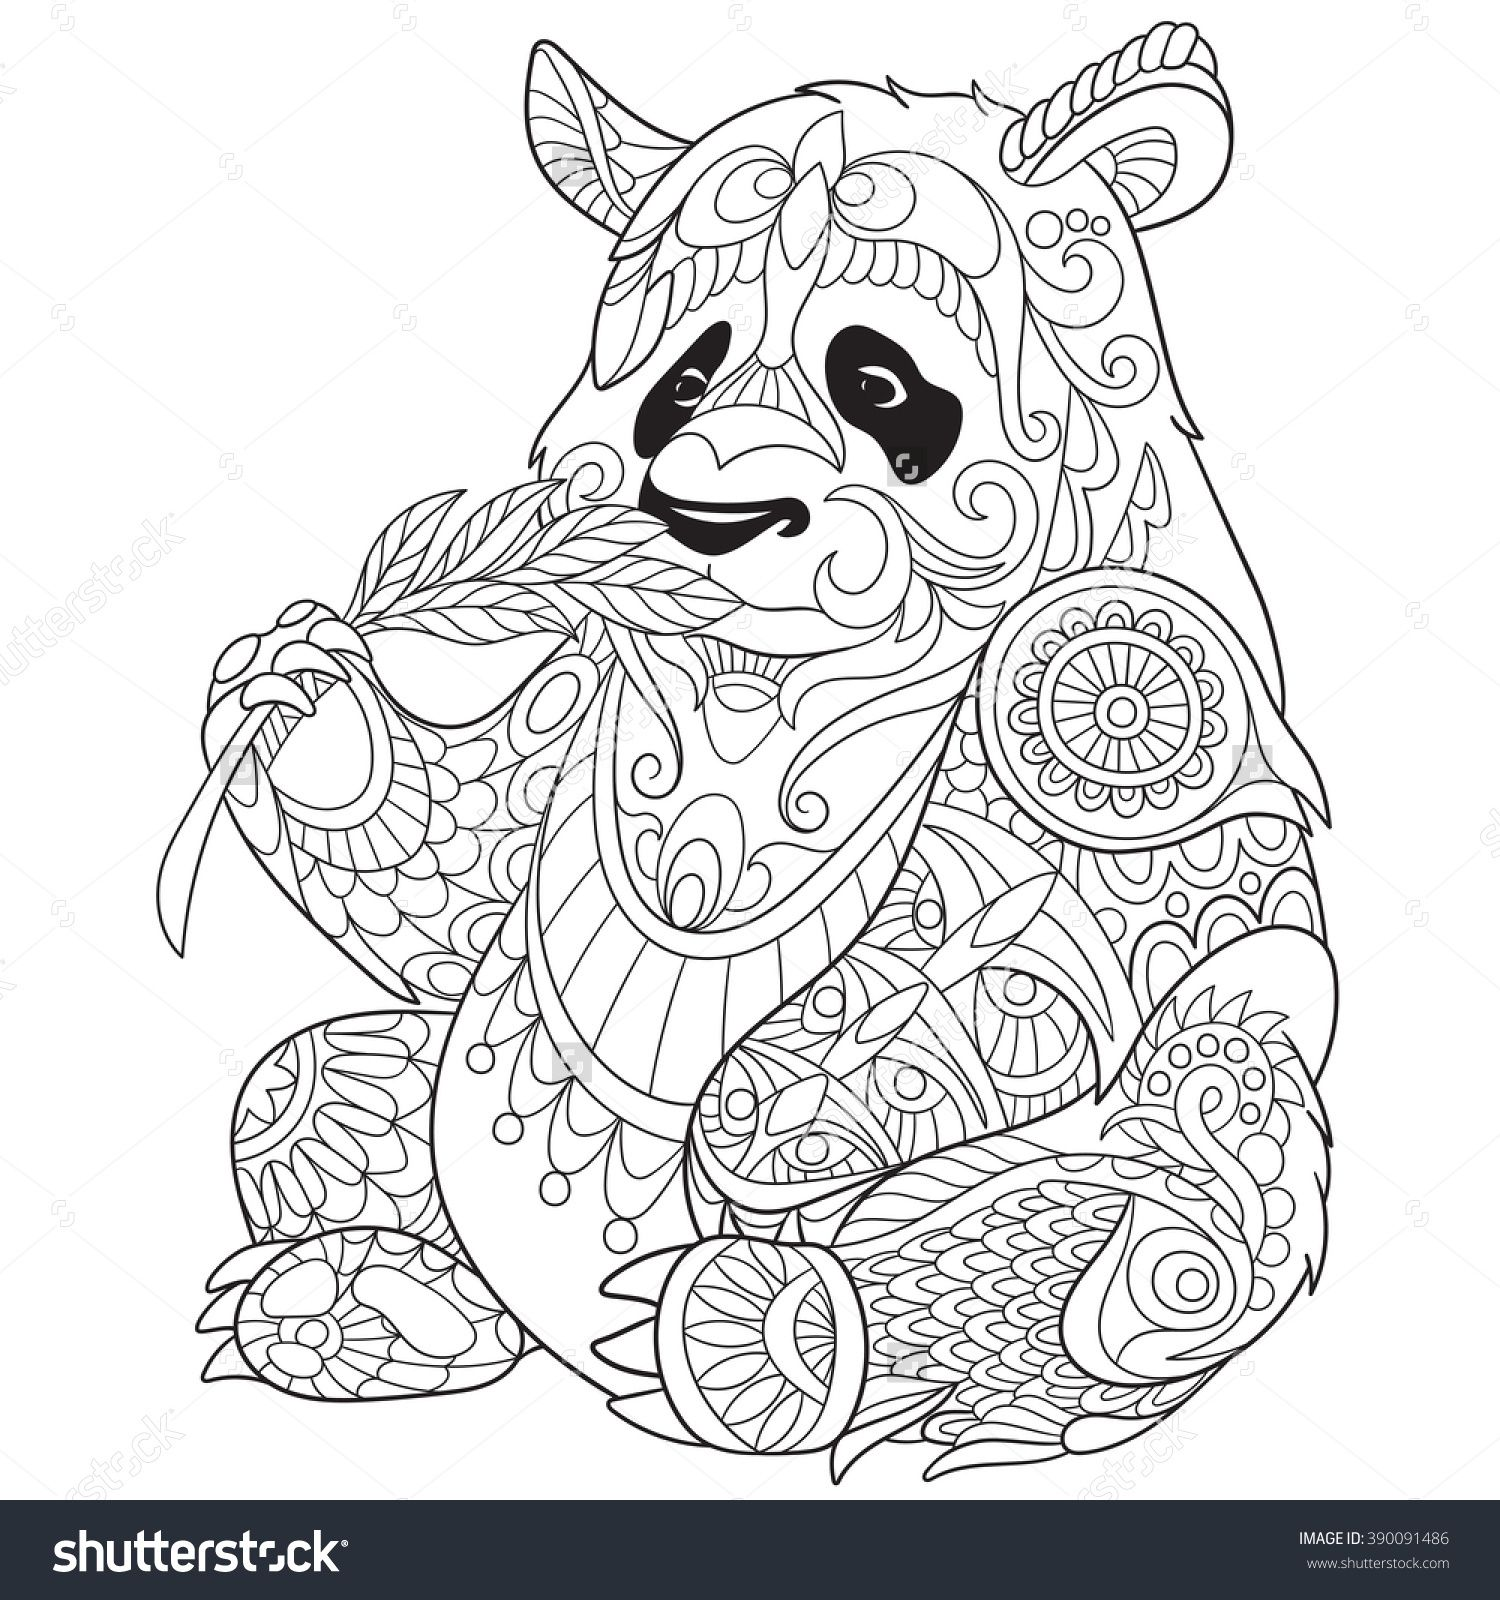 Pin by kimberly robertson on coloring pinterest adult for Giant coloring pages for adults